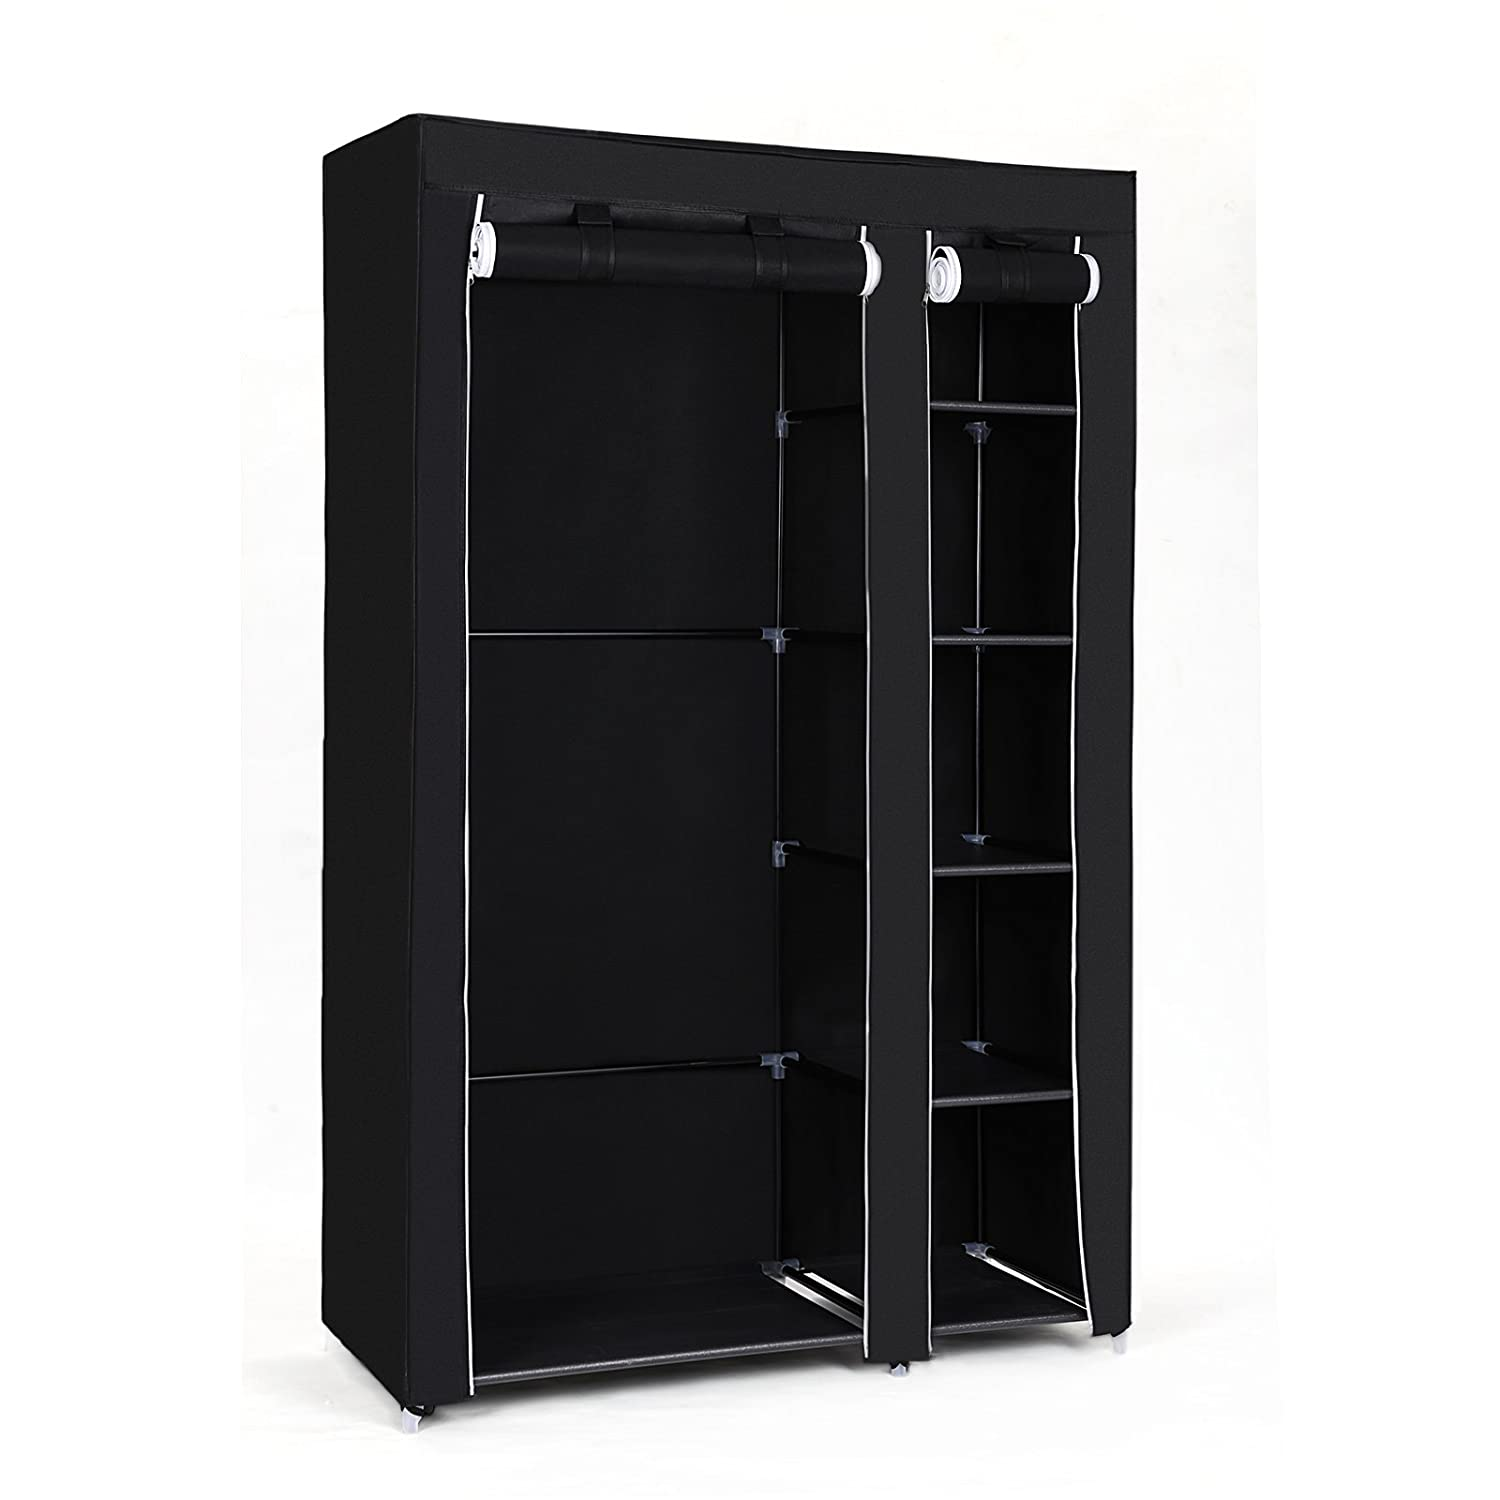 modele d armoire de chambre a coucher stunning chambre a. Black Bedroom Furniture Sets. Home Design Ideas